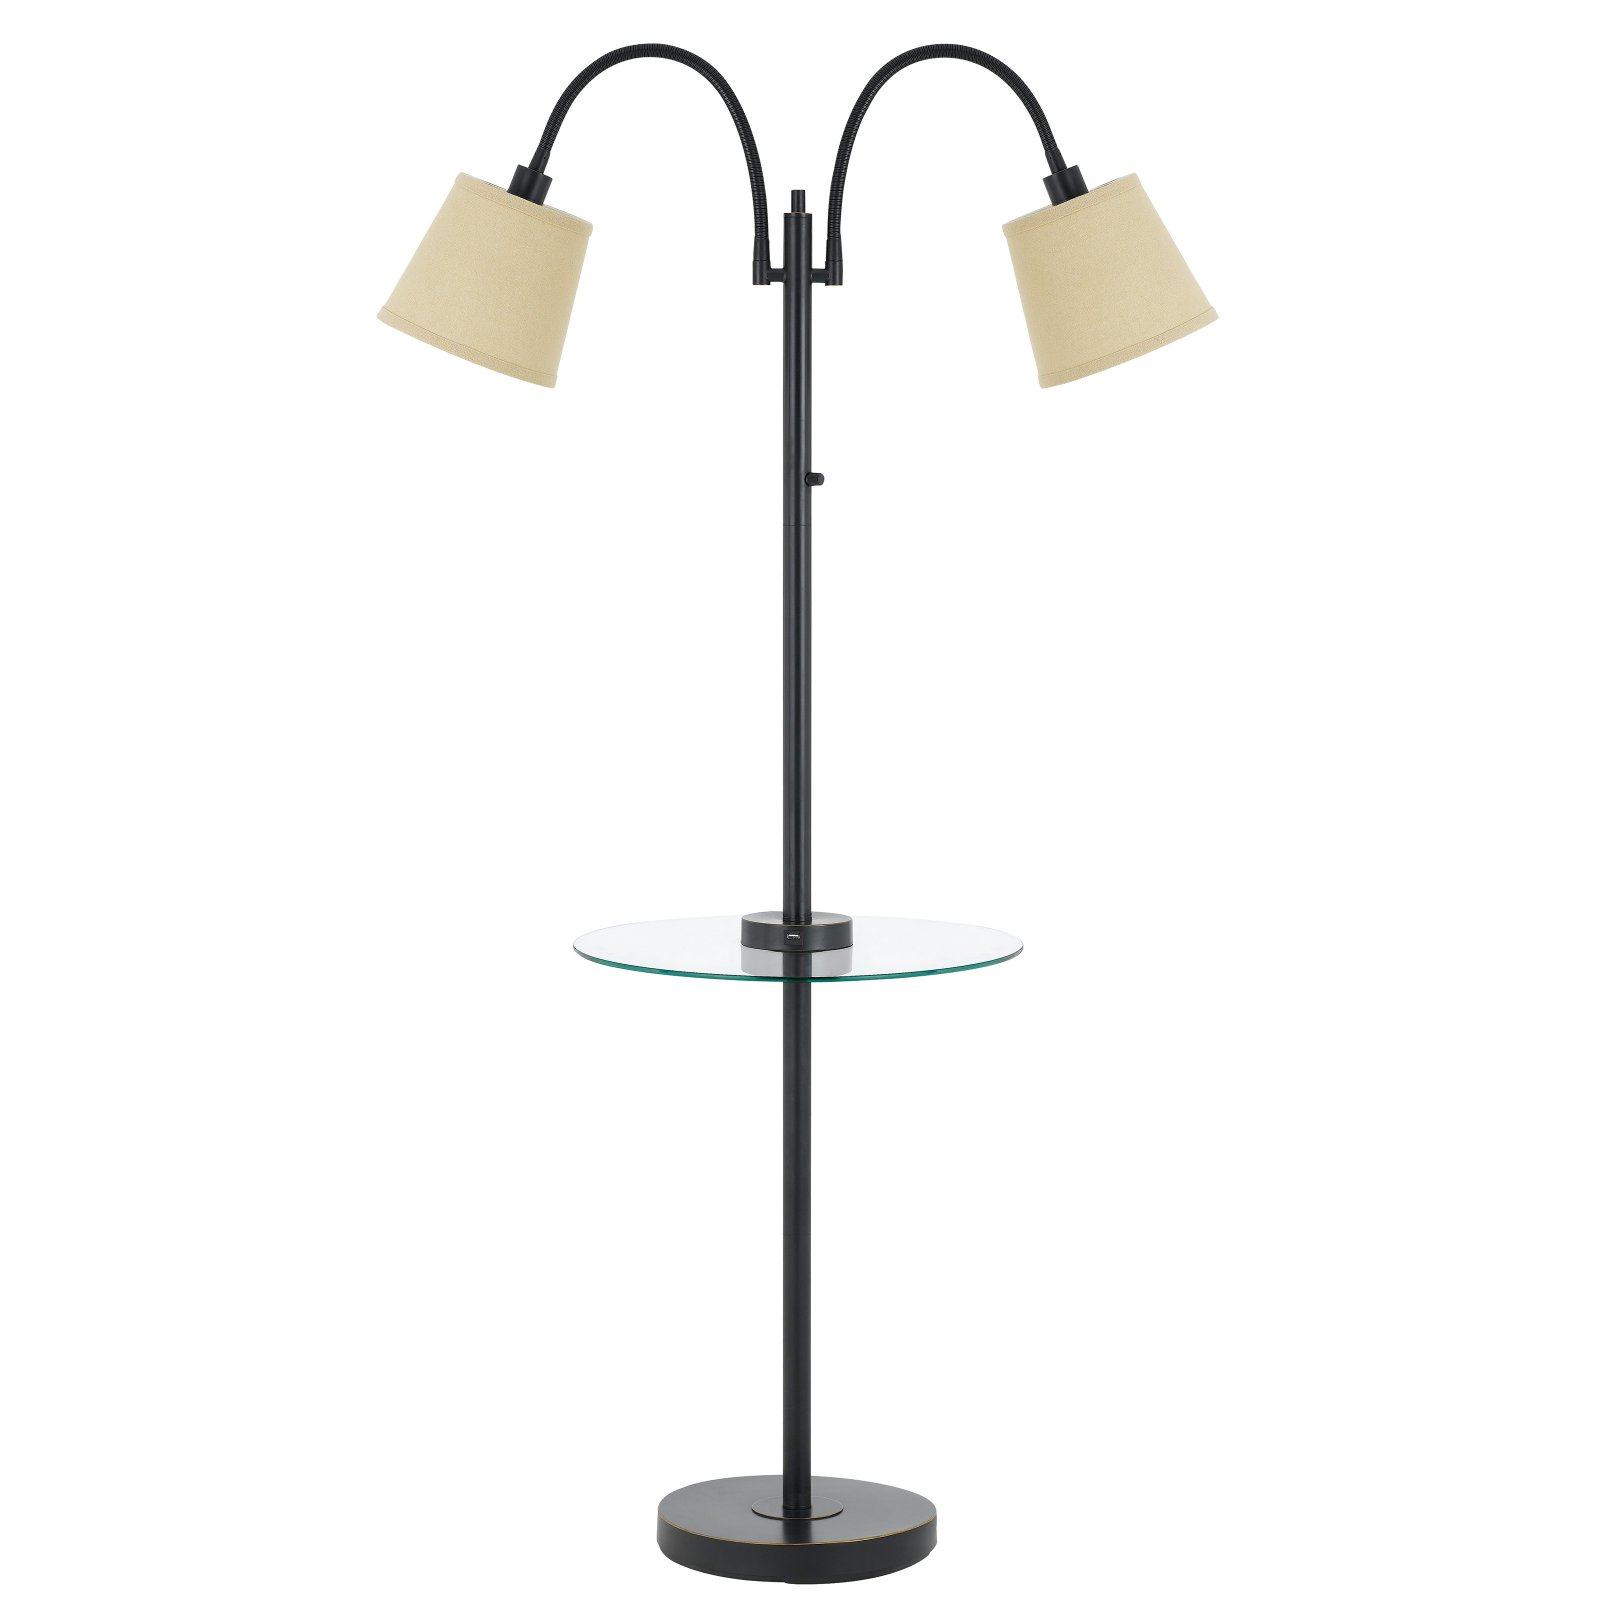 Cal Lighting Gail Double Gooseneck Floor Lamp with Glass Table and Charging Ports by CAL Lighting